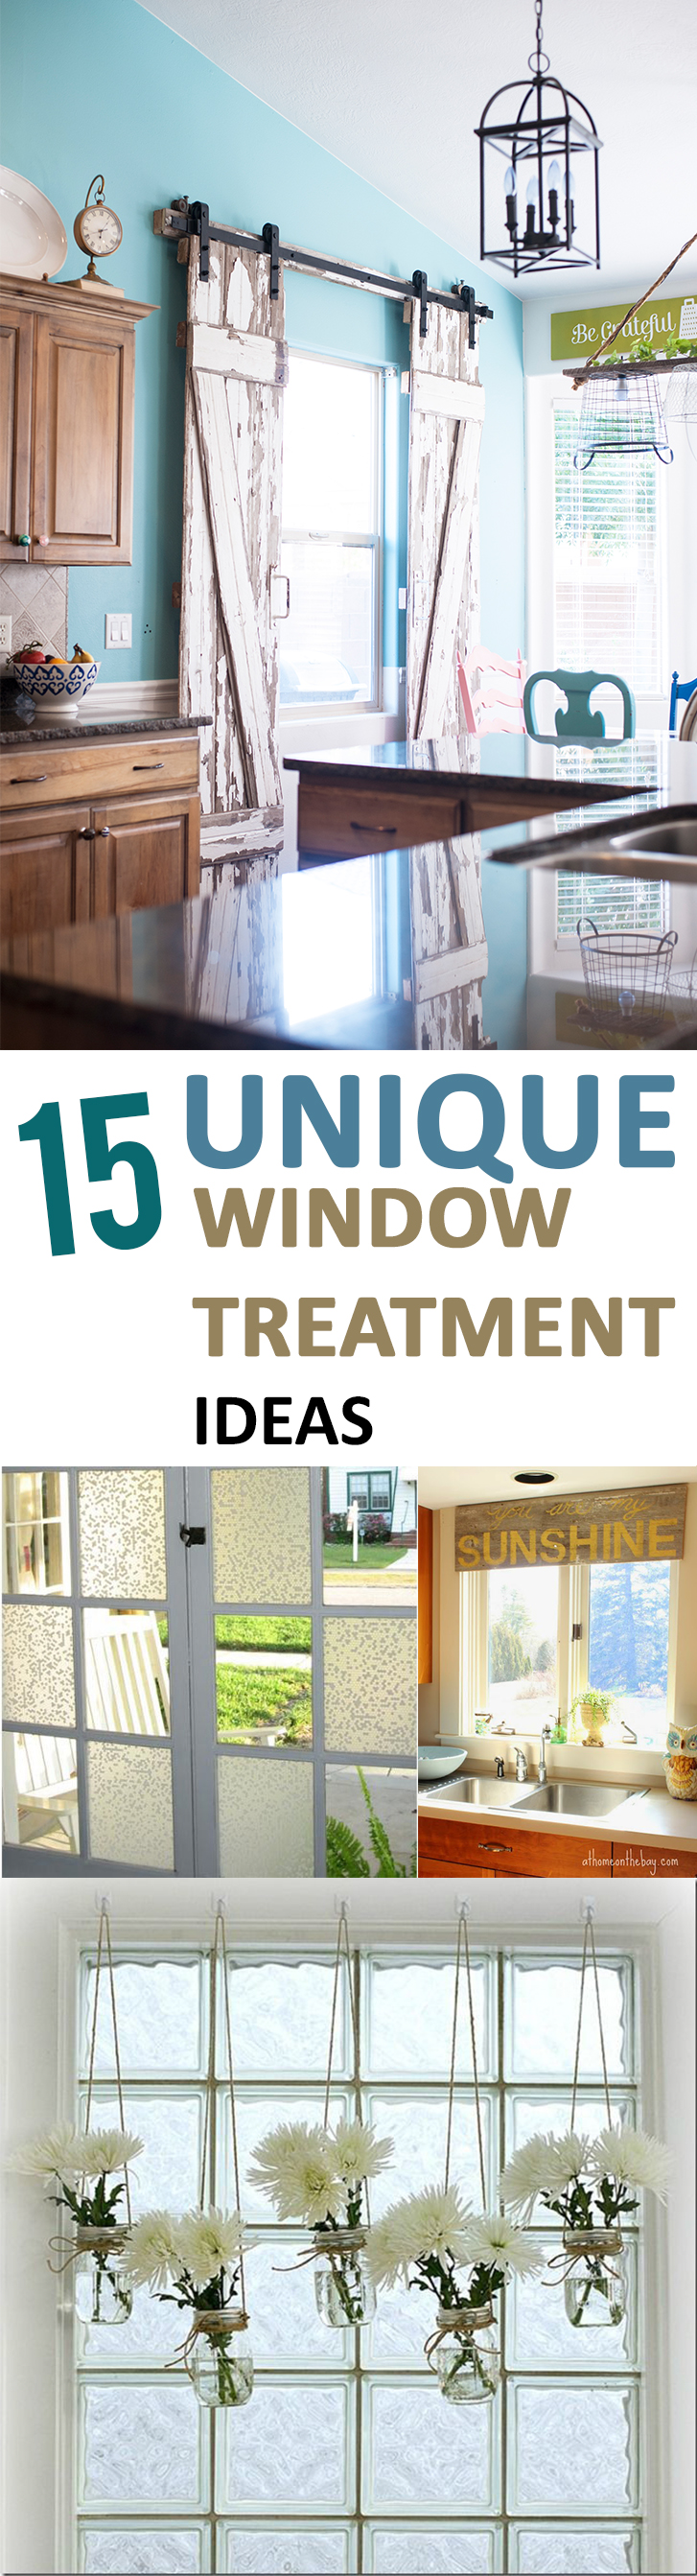 15 Unique Window Treatment Ideas Sunlit Spaces Diy Home Decor Holiday And More